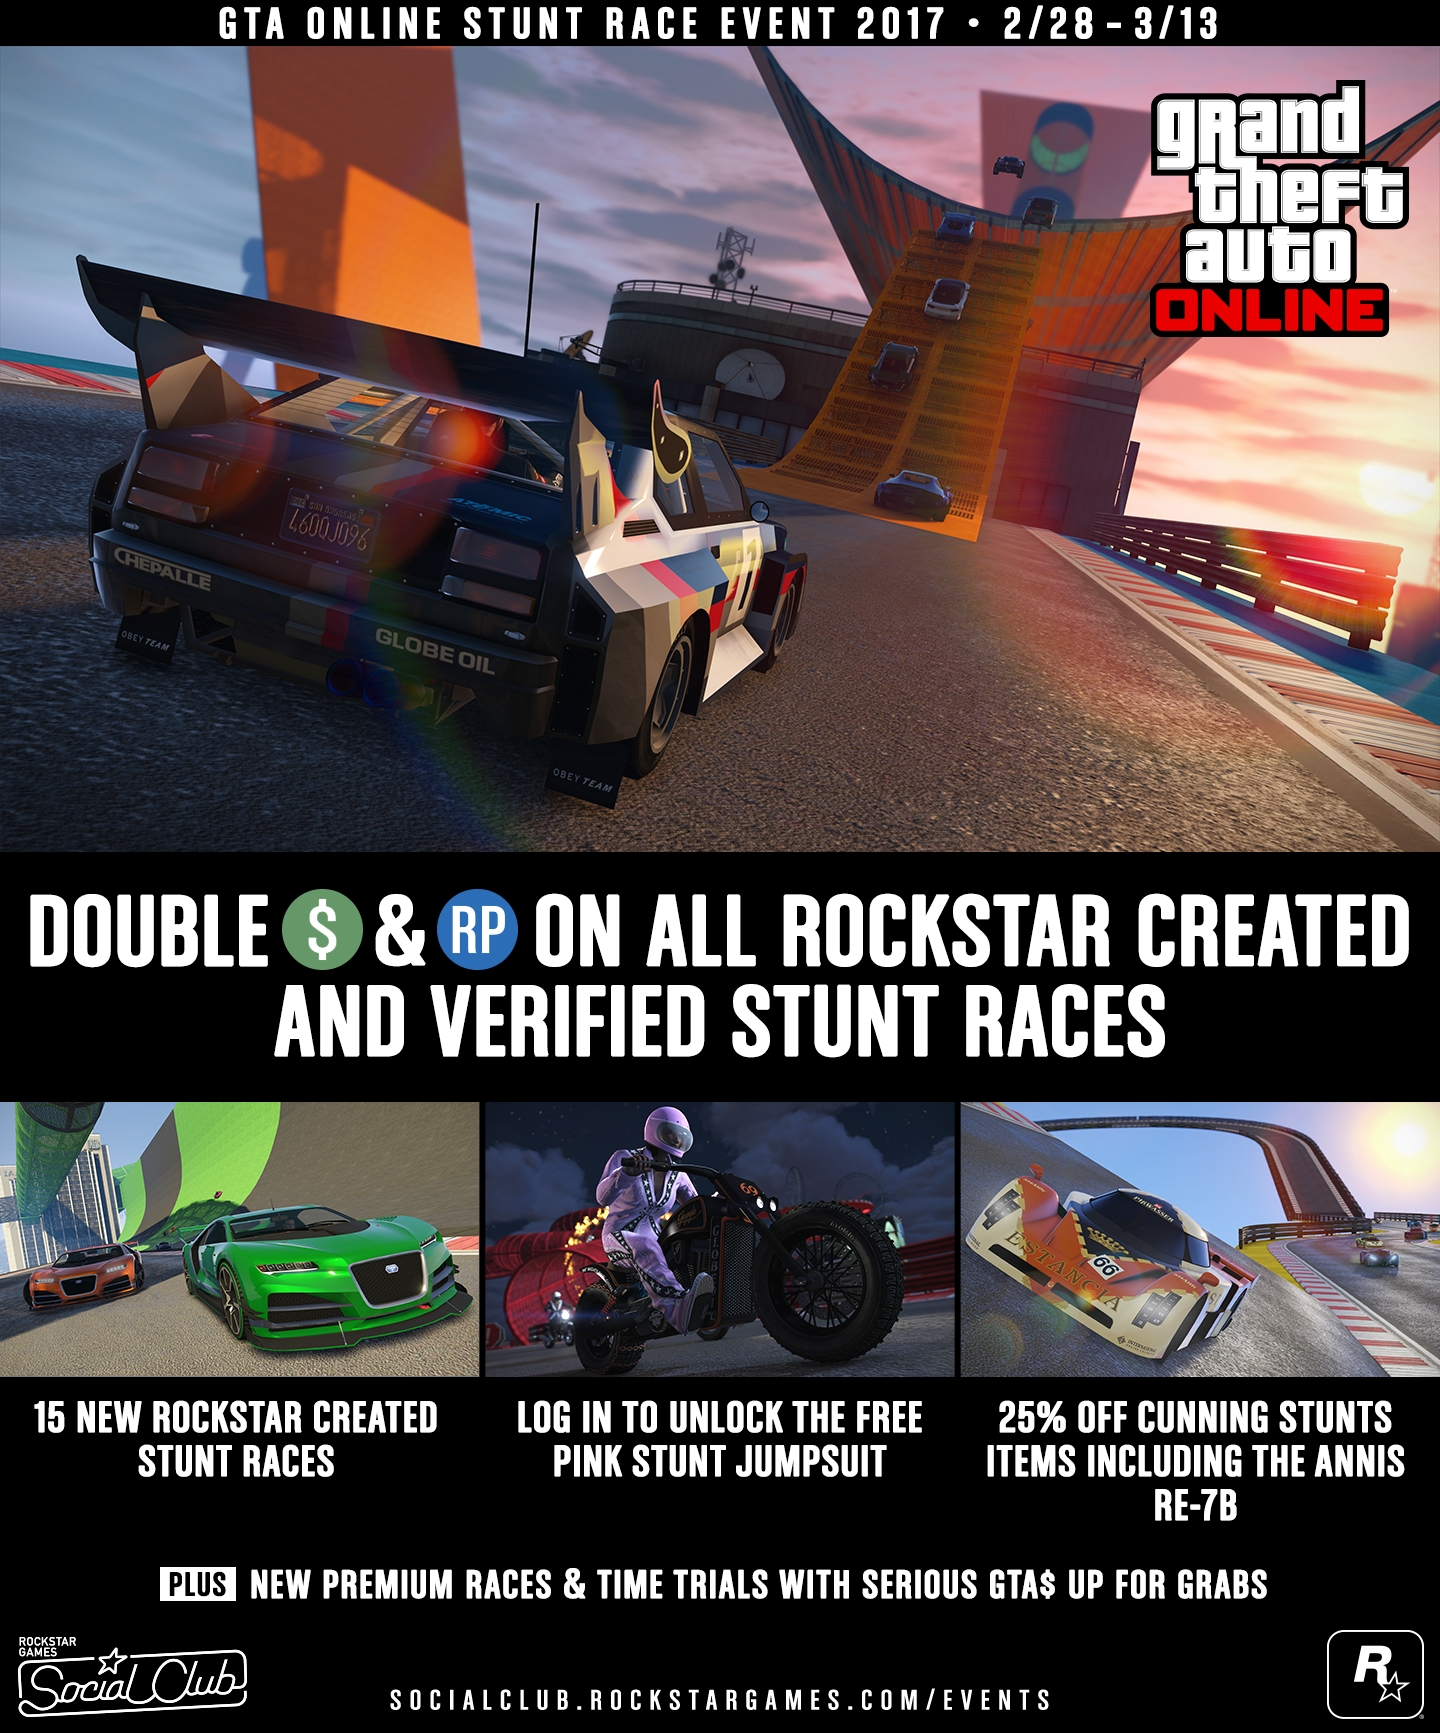 GTA Online Stunt Race Event: New Races, Double Cash